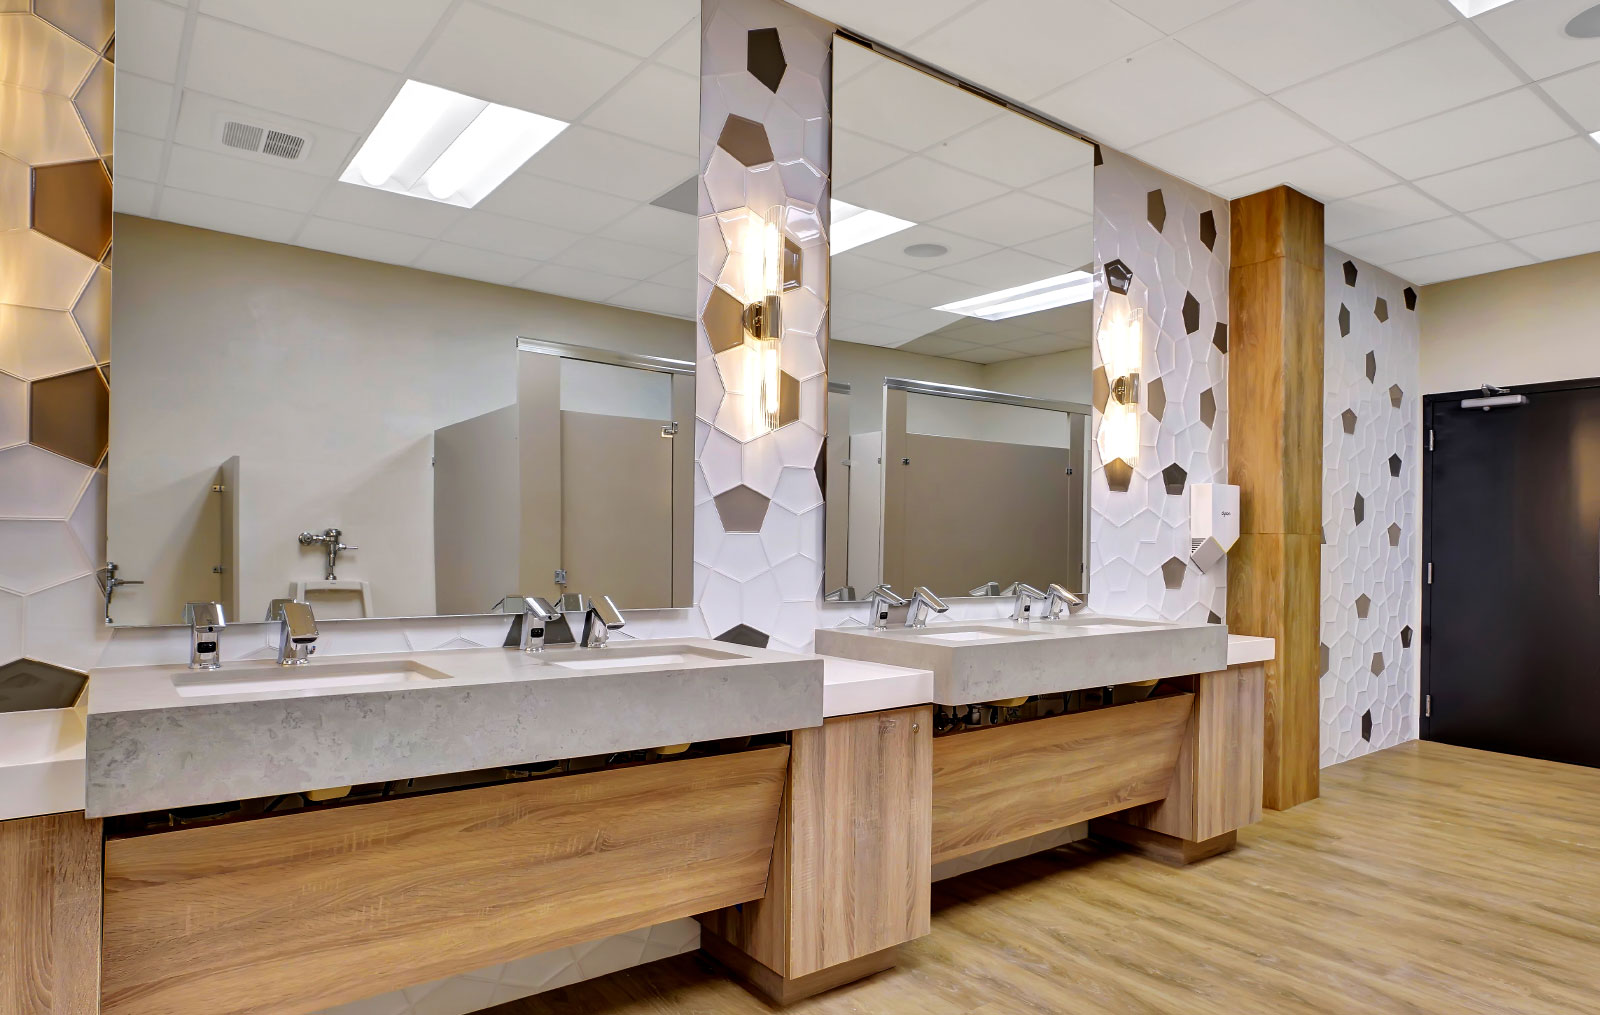 four sinks, grouped into two, with large mirrors per each group and small indented counter spaces buffering the sides of each group